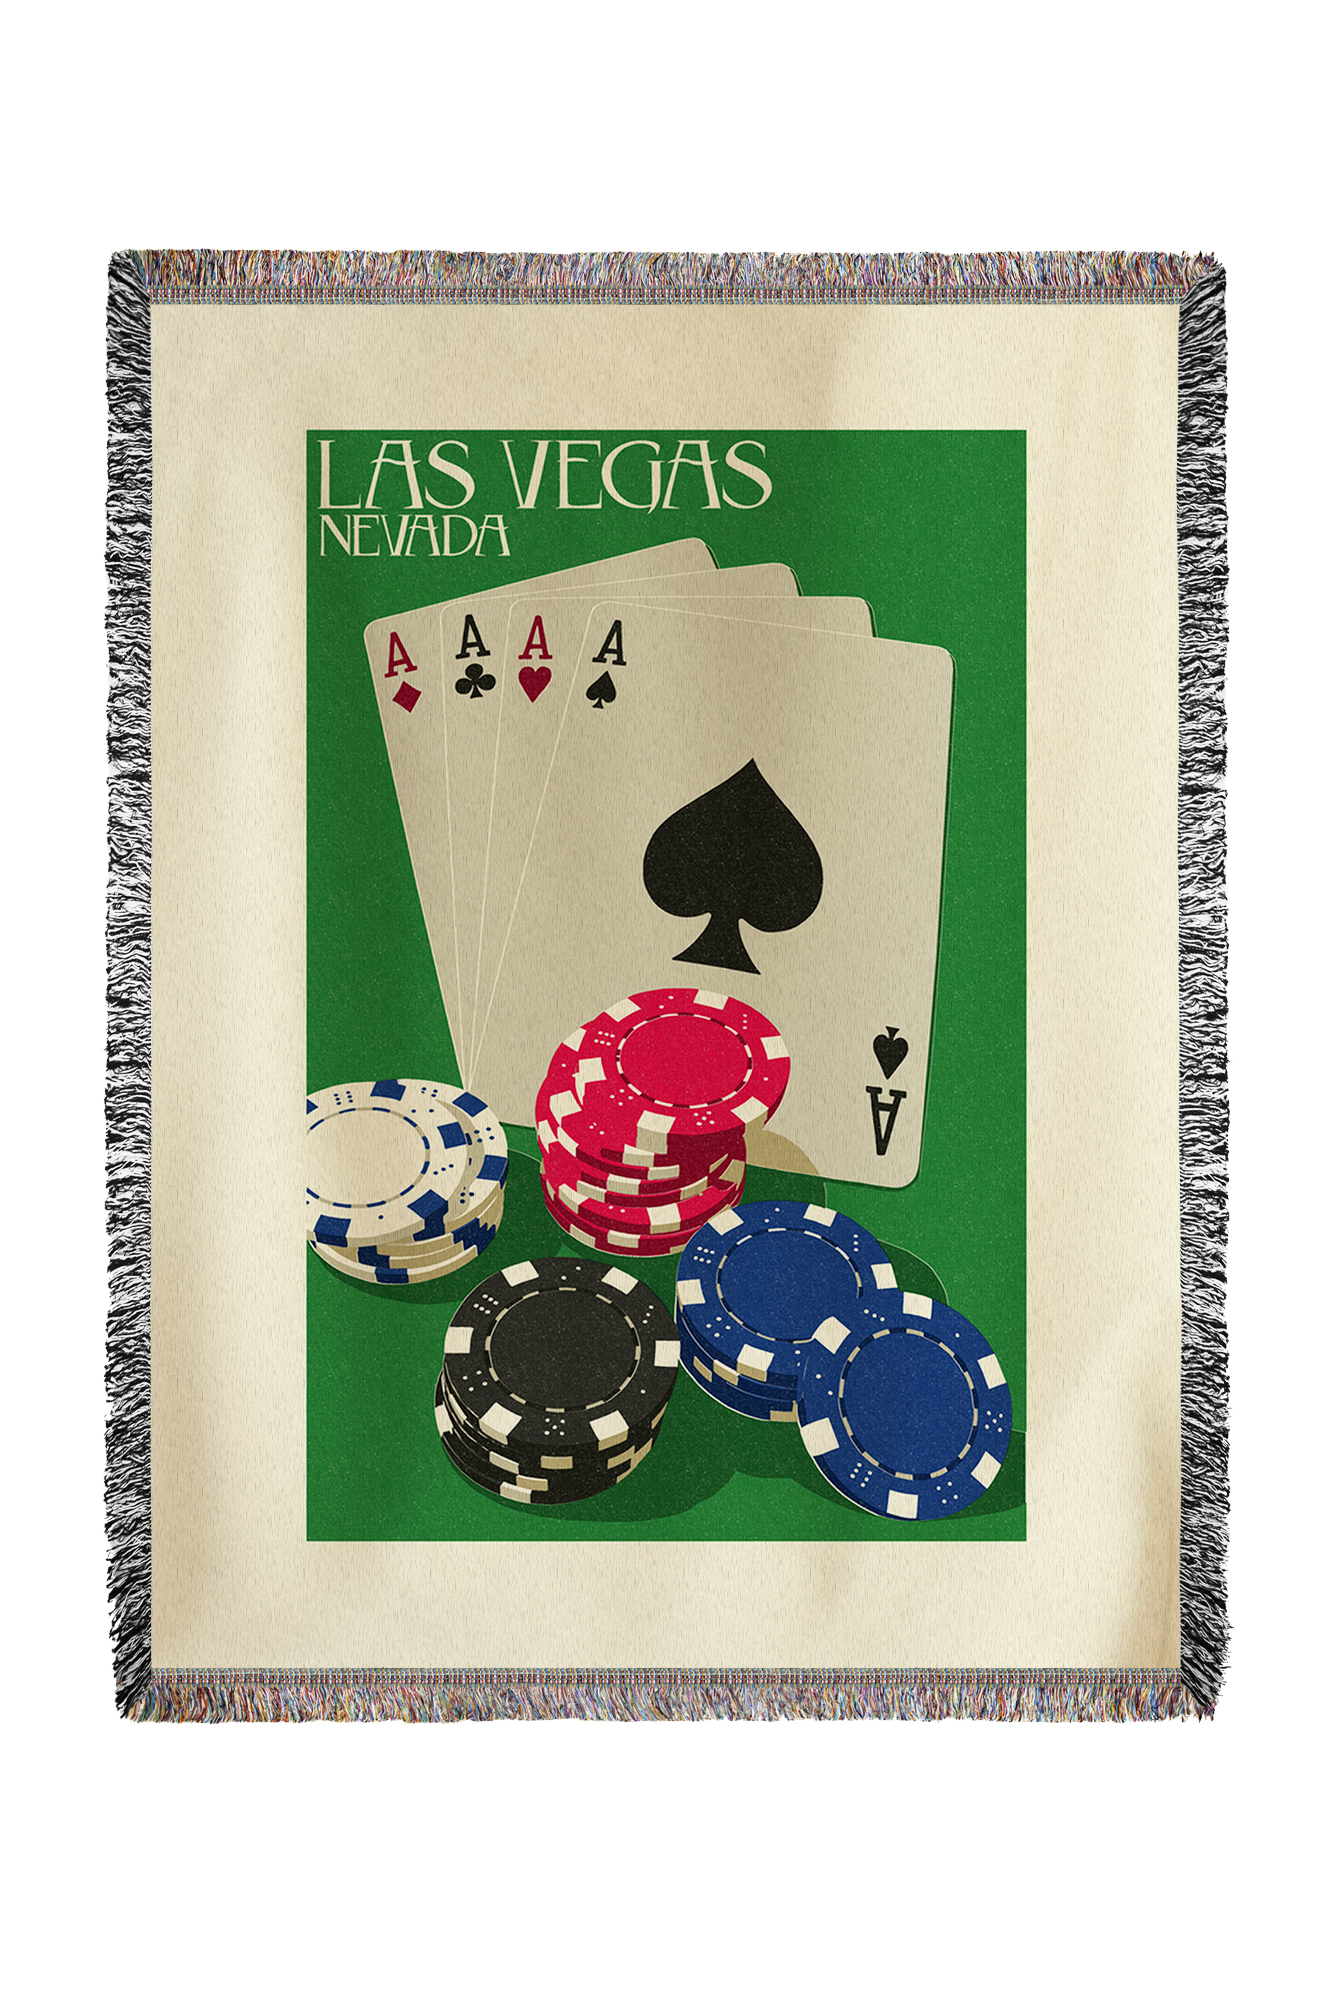 Las Vegas, Nevada Poker Cards & Chips Letterpress Lantern Press Artwork (60x80 Woven Chenille Yarn Blanket) by Lantern Press